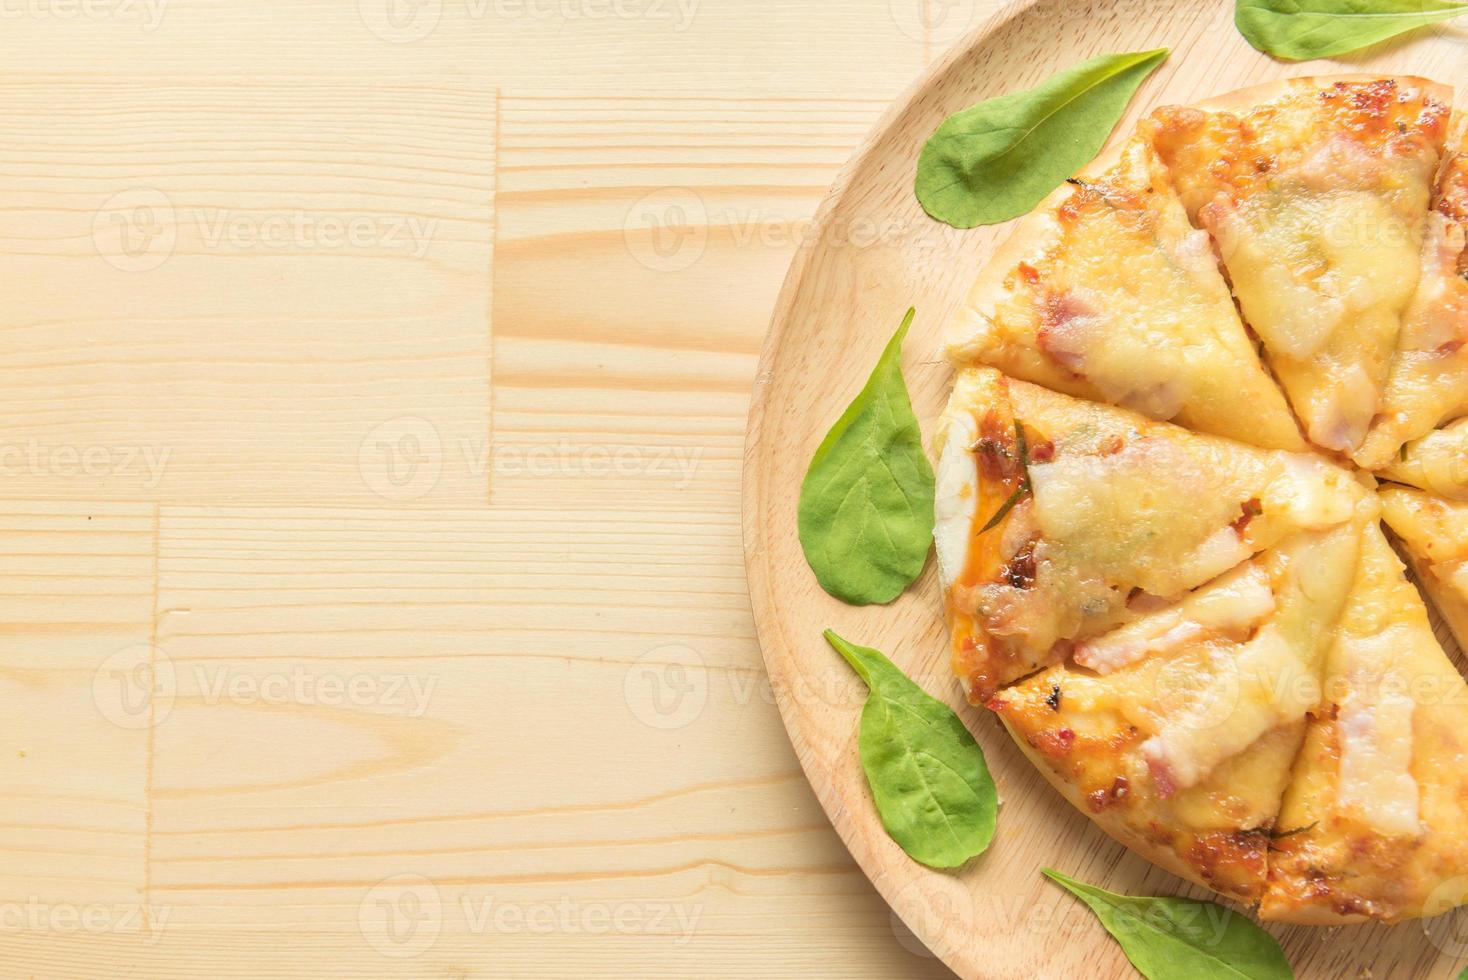 Rustic pizza on wooden background. Top view photo